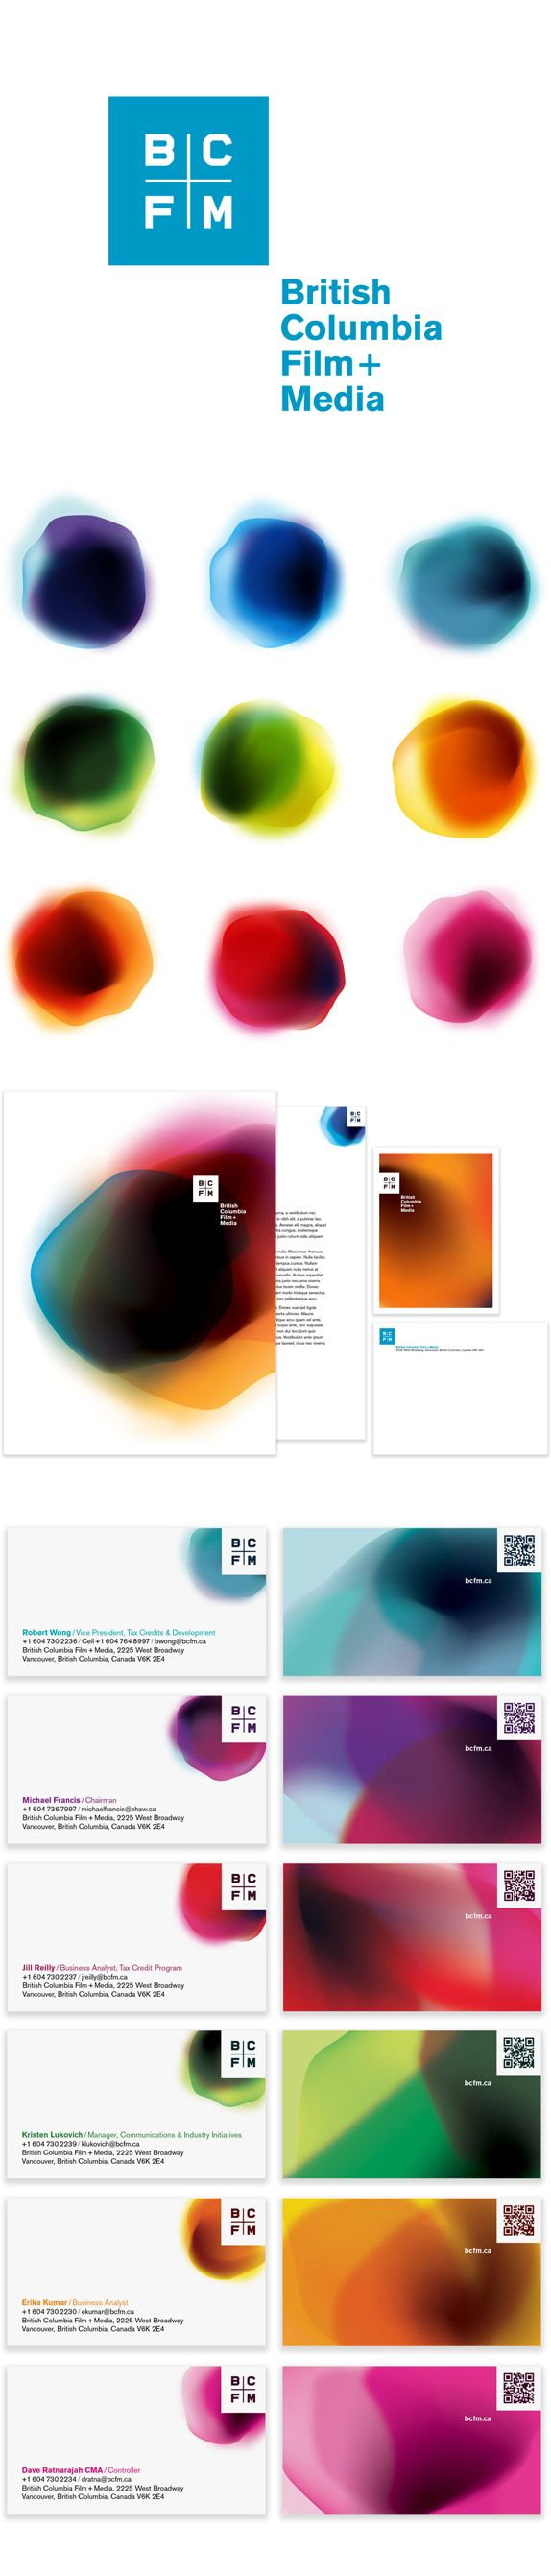 Remember when logos were one color? Maybe two? This identity for BC Film + Media breaks all the rules and blurs the lines.